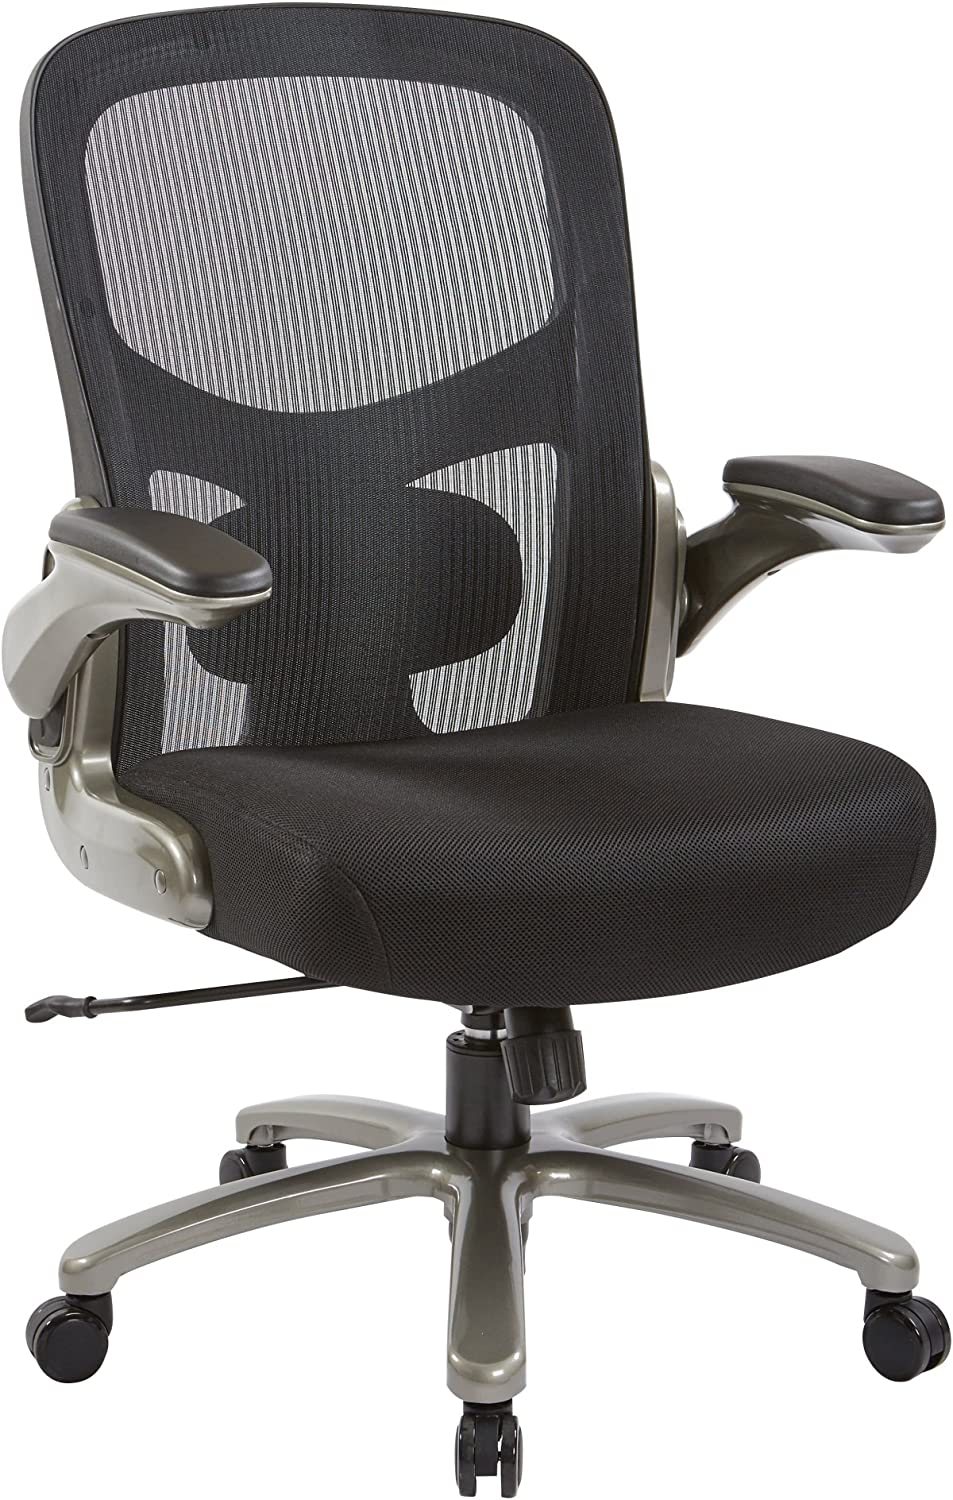 Office Star Big and Tall Mesh Back and Padded Mesh Seat Executive Chair with Adjustable Lumbar Support, Adjustable Flip Arms, and Titanium Accents, Black